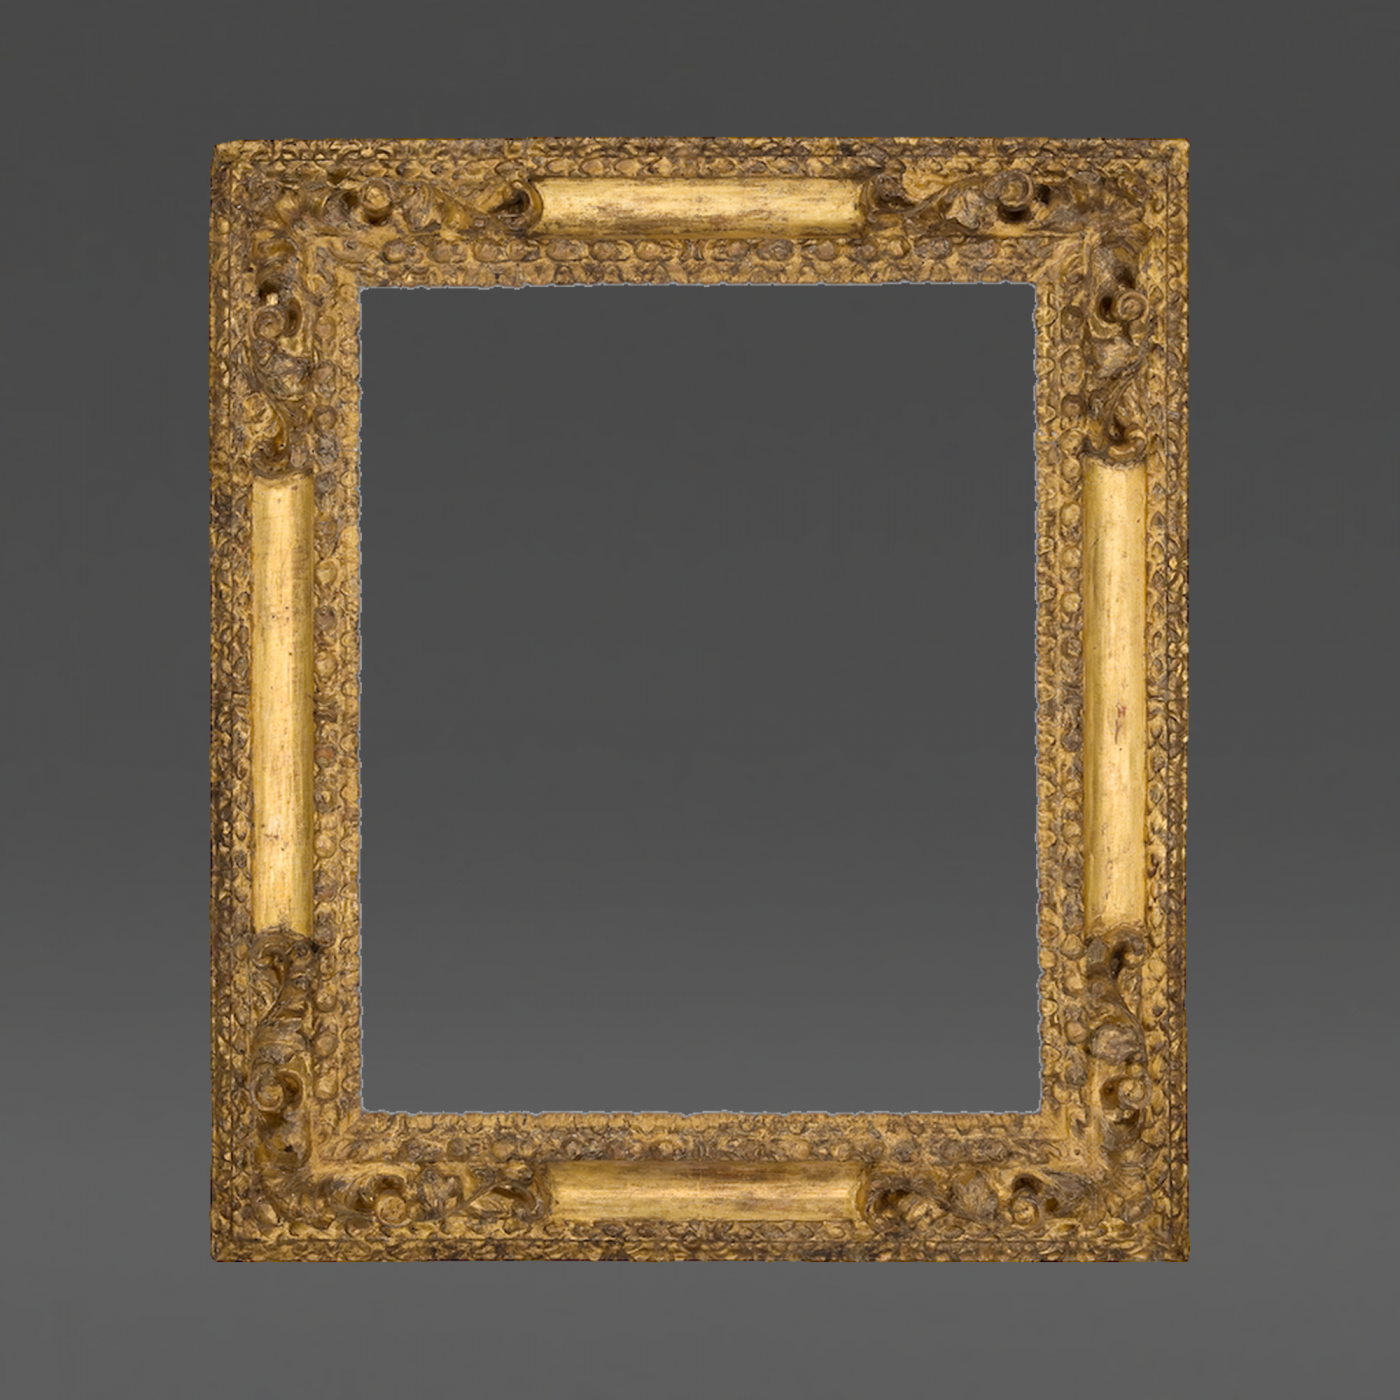 Glasses Frame In Spanish : 17th Century Spanish Receding Frame with Corners